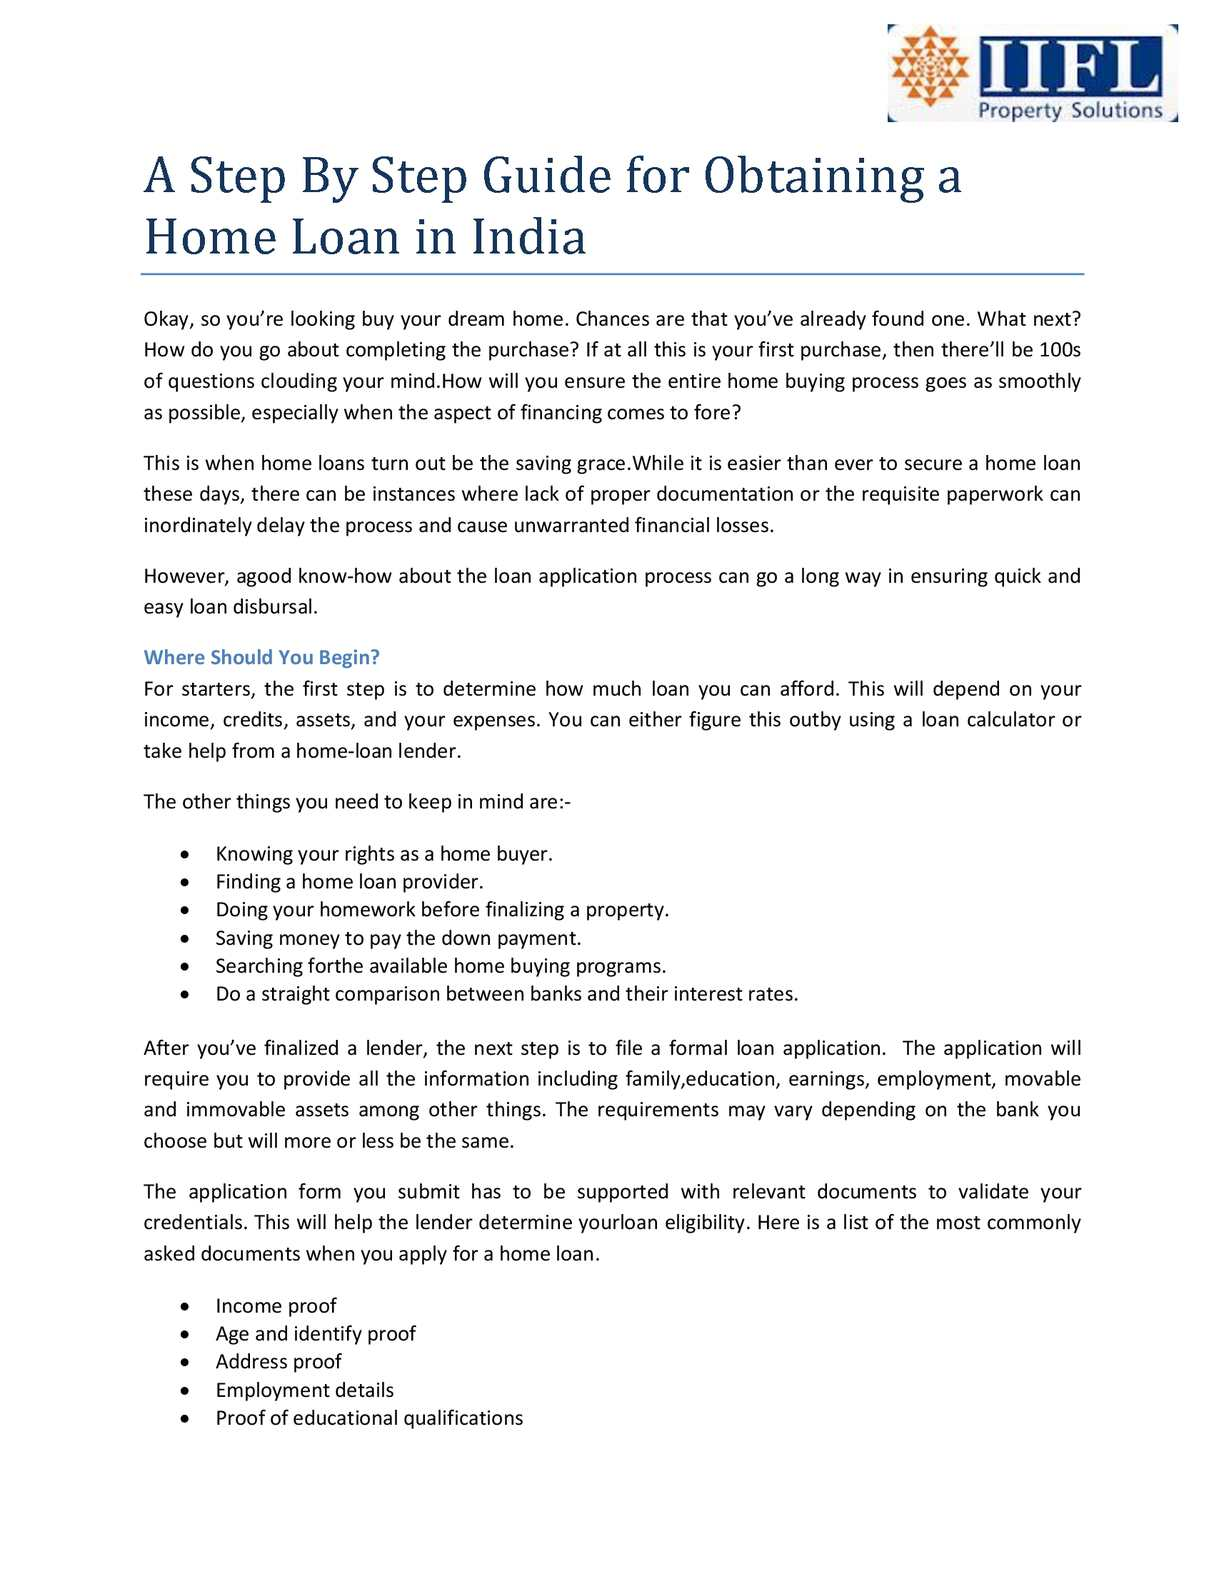 Bank For Home Loan In India Calaméo A Step By Step Guide For Obtaining A Home Loan In India